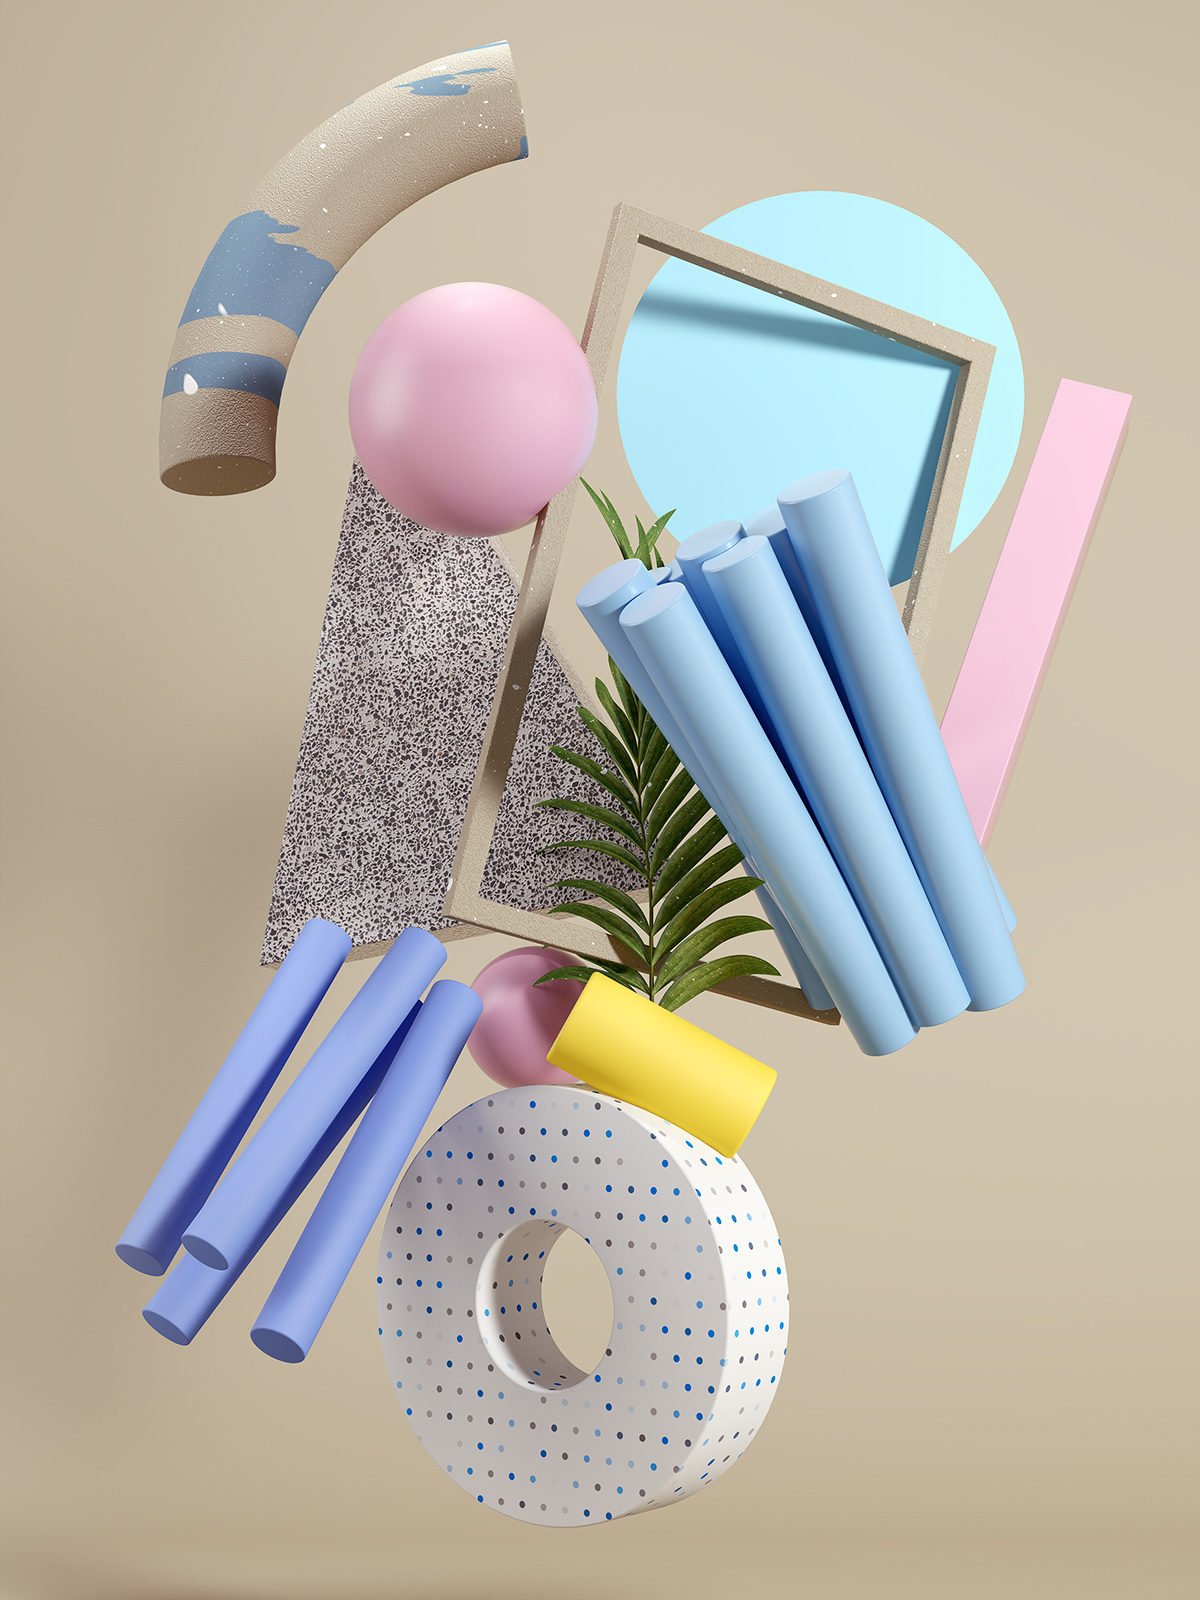 Shapes and objects with different textures. Background image with colors.